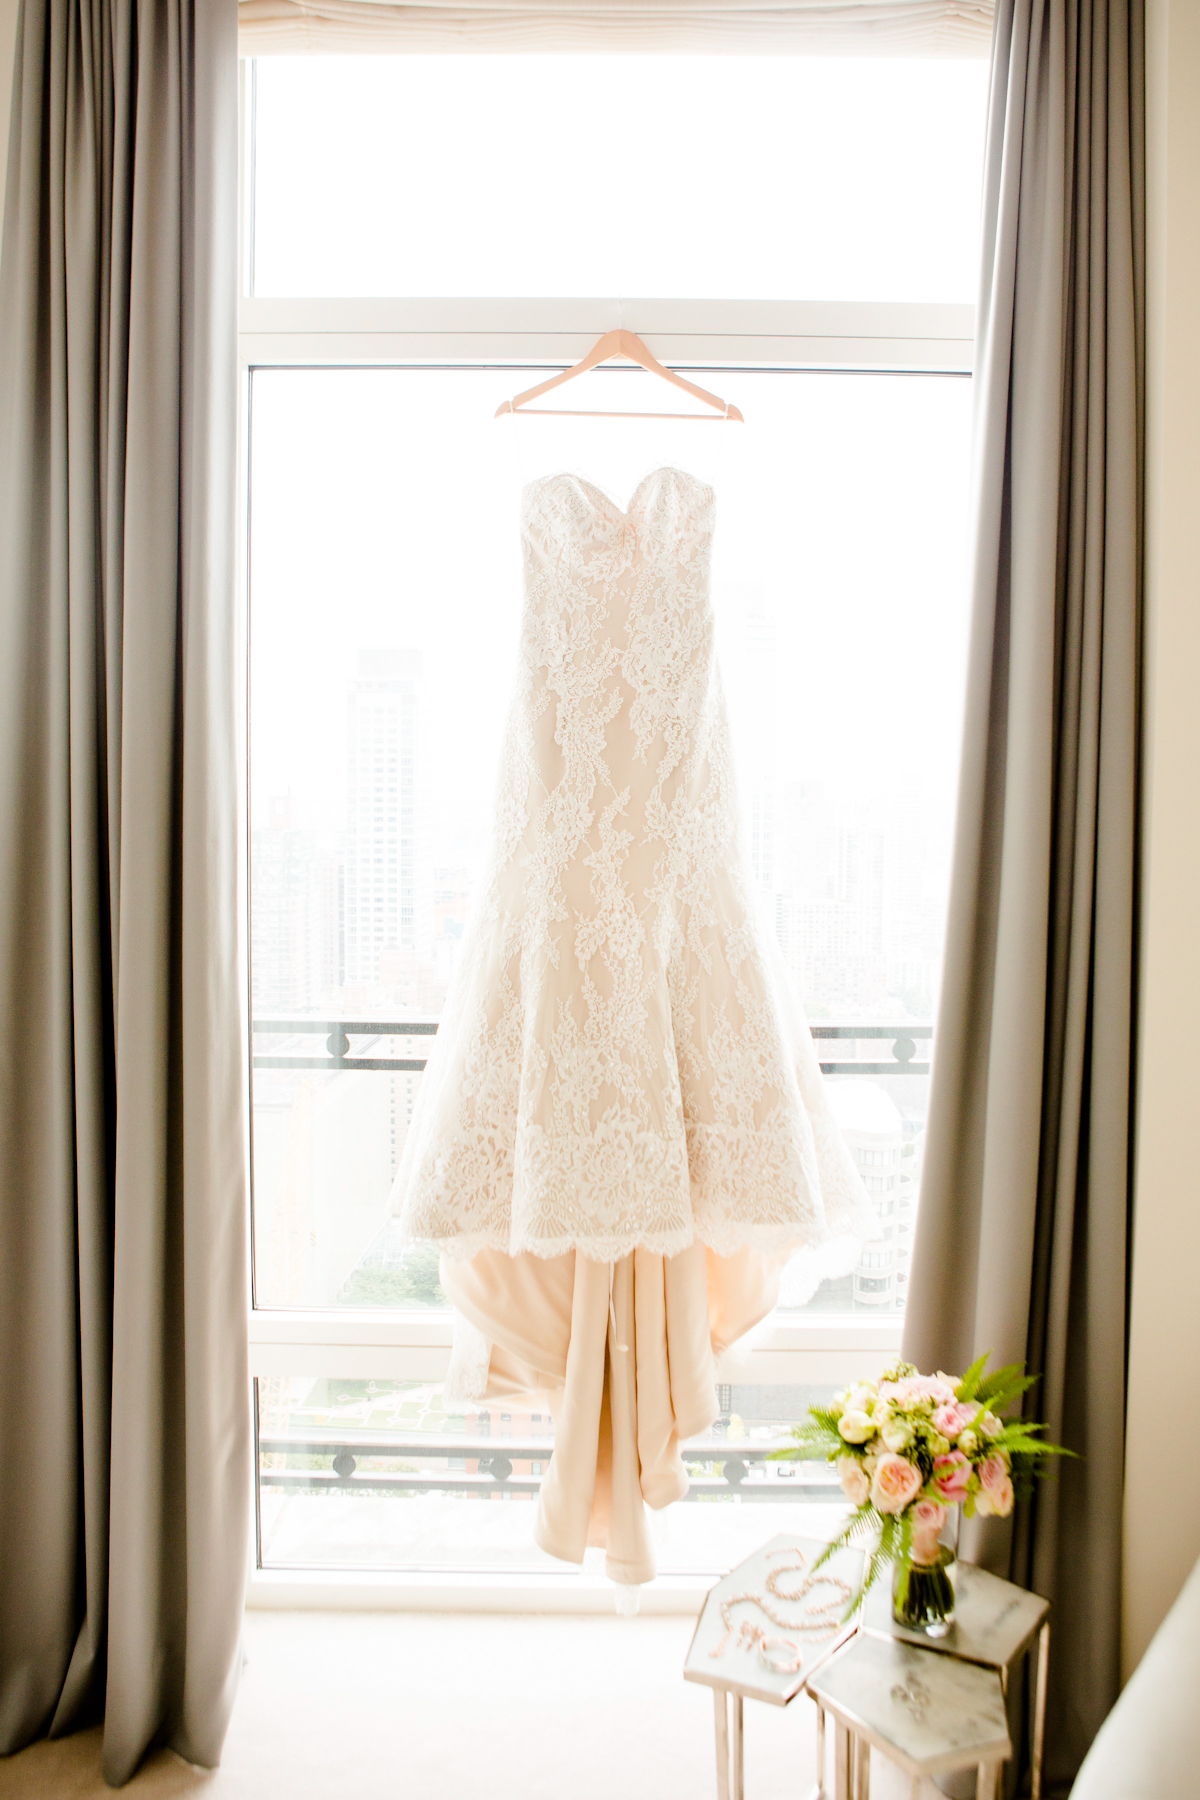 Rainbow Room Wedding, Ang Weddings and Events, Dave Robbins Photography, Kleinfeld Bridal gown